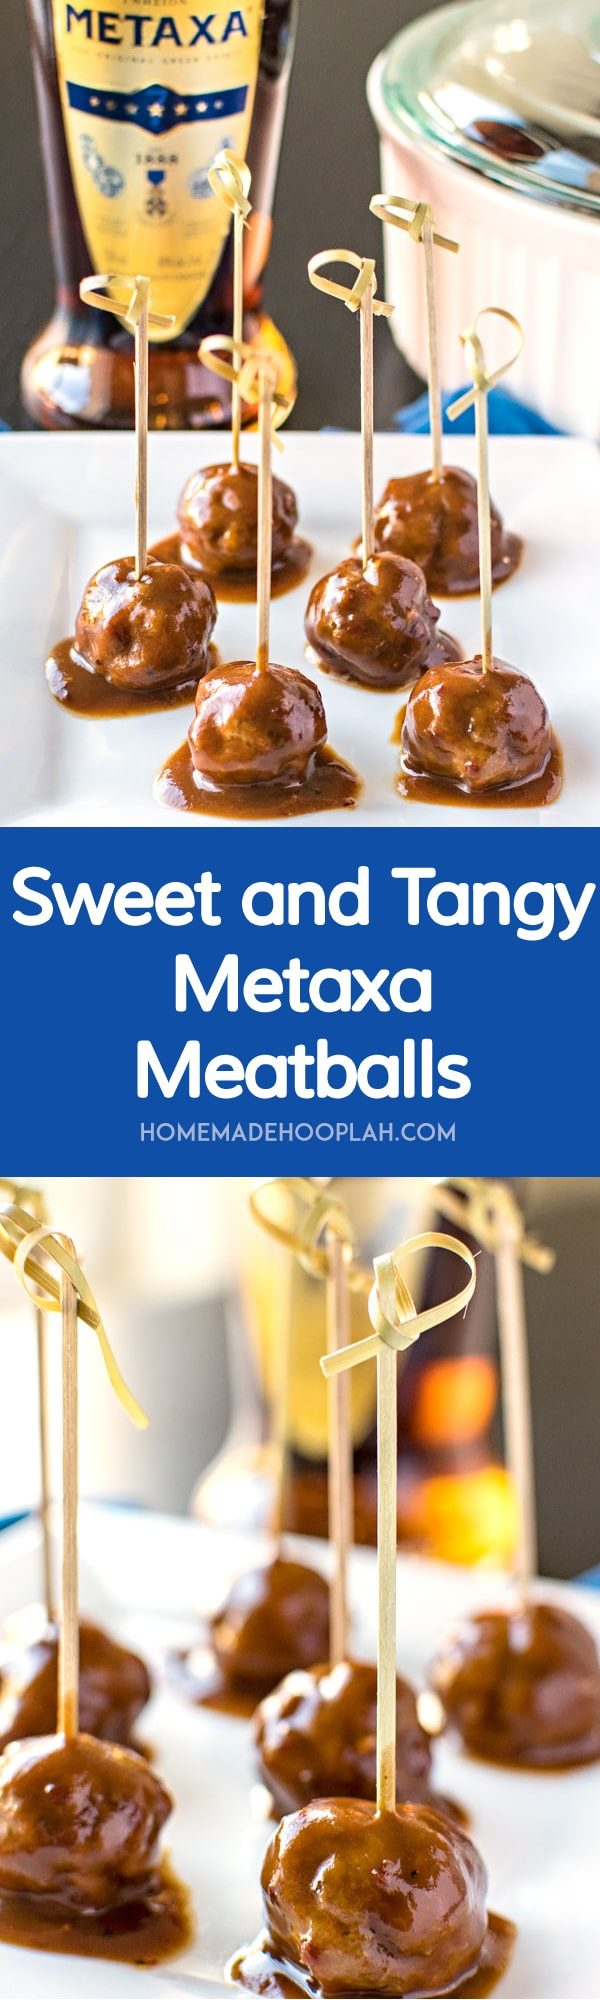 Sweet and Tangy Metaxa Meatballs! Savory meatballs in a sweet and tangy sauce that's spiked with Metaxa. Serve them with pasta or as a snack at your next party! | HomemadeHooplah.com